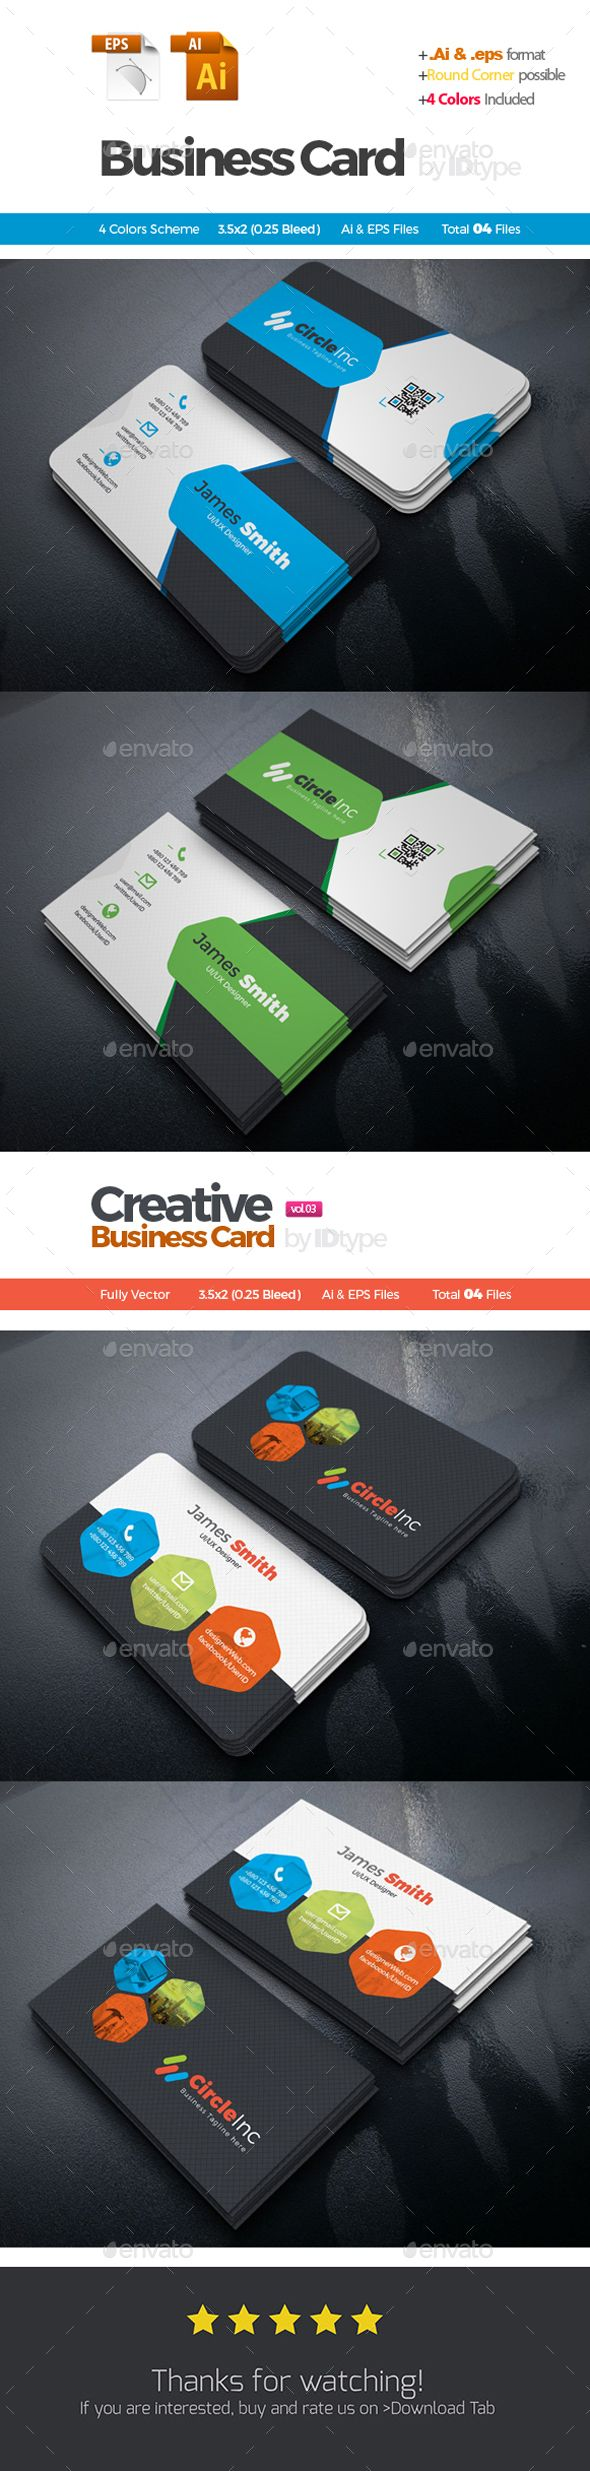 Business Card Bundle 2 In 1 Corporate Business Business Cards